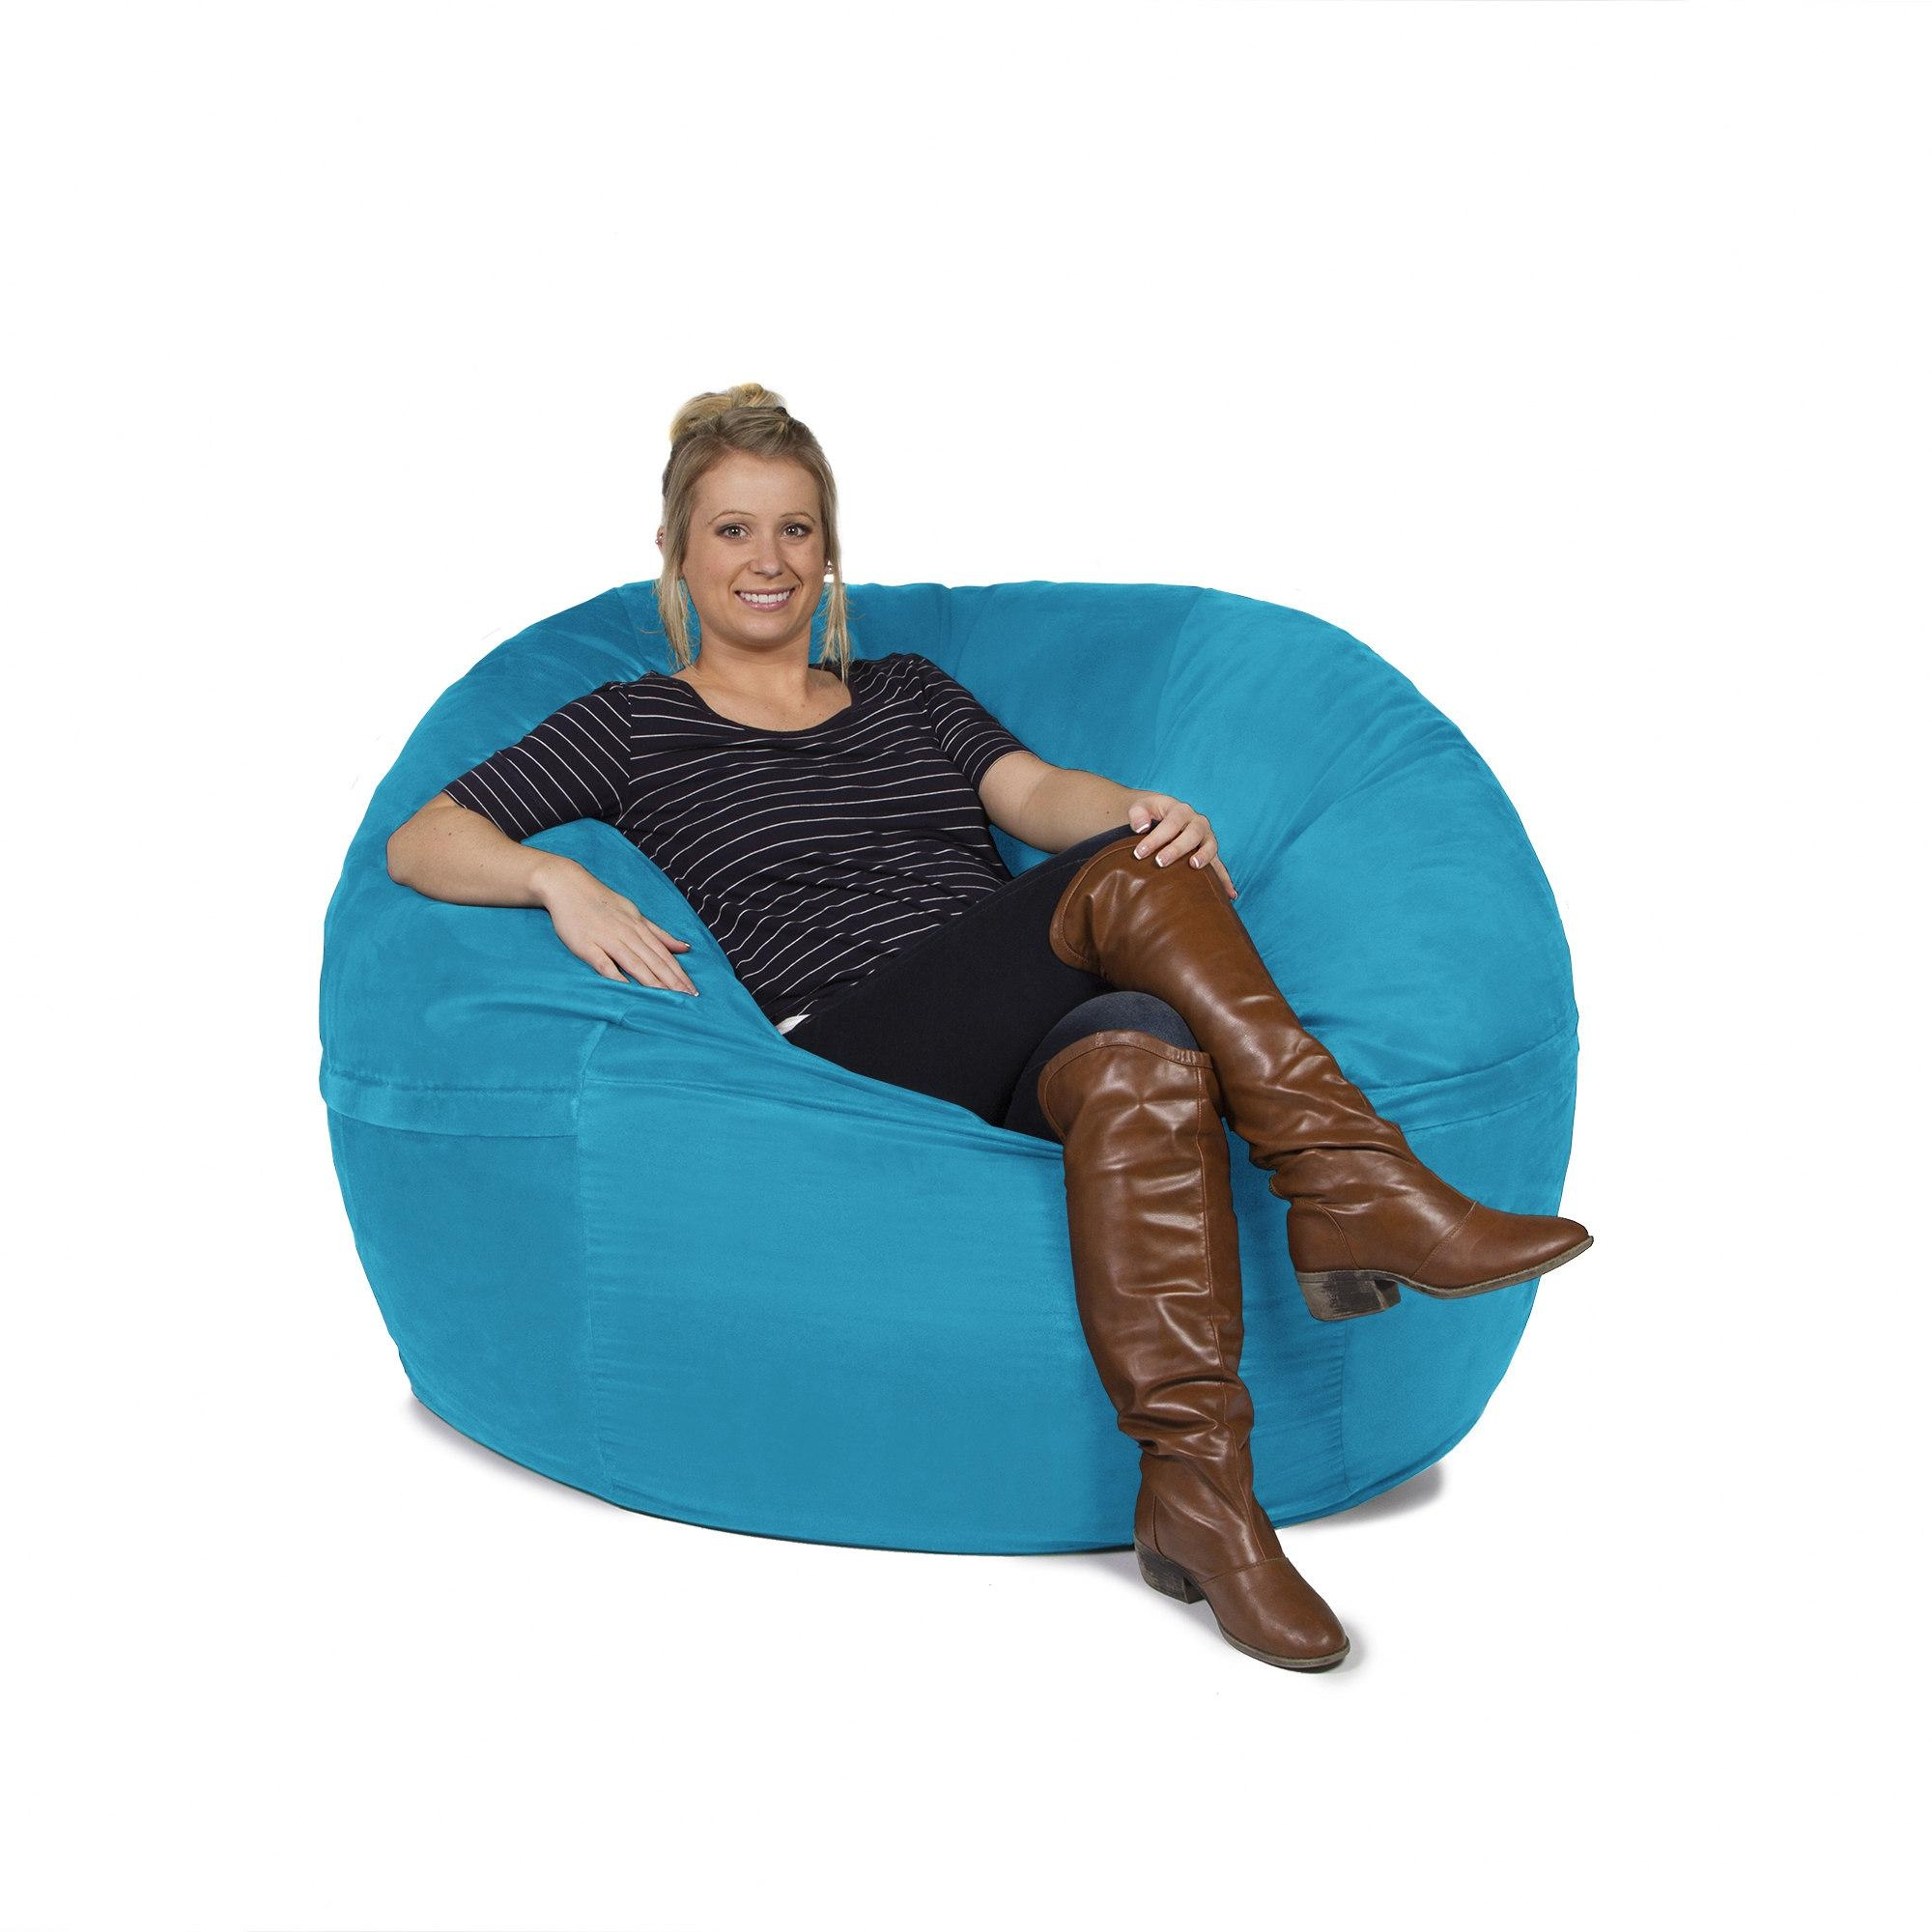 Oversized Bean Bags Chairs 20 Best Collection Of Giant Bean Bag Chairs Sofa Ideas